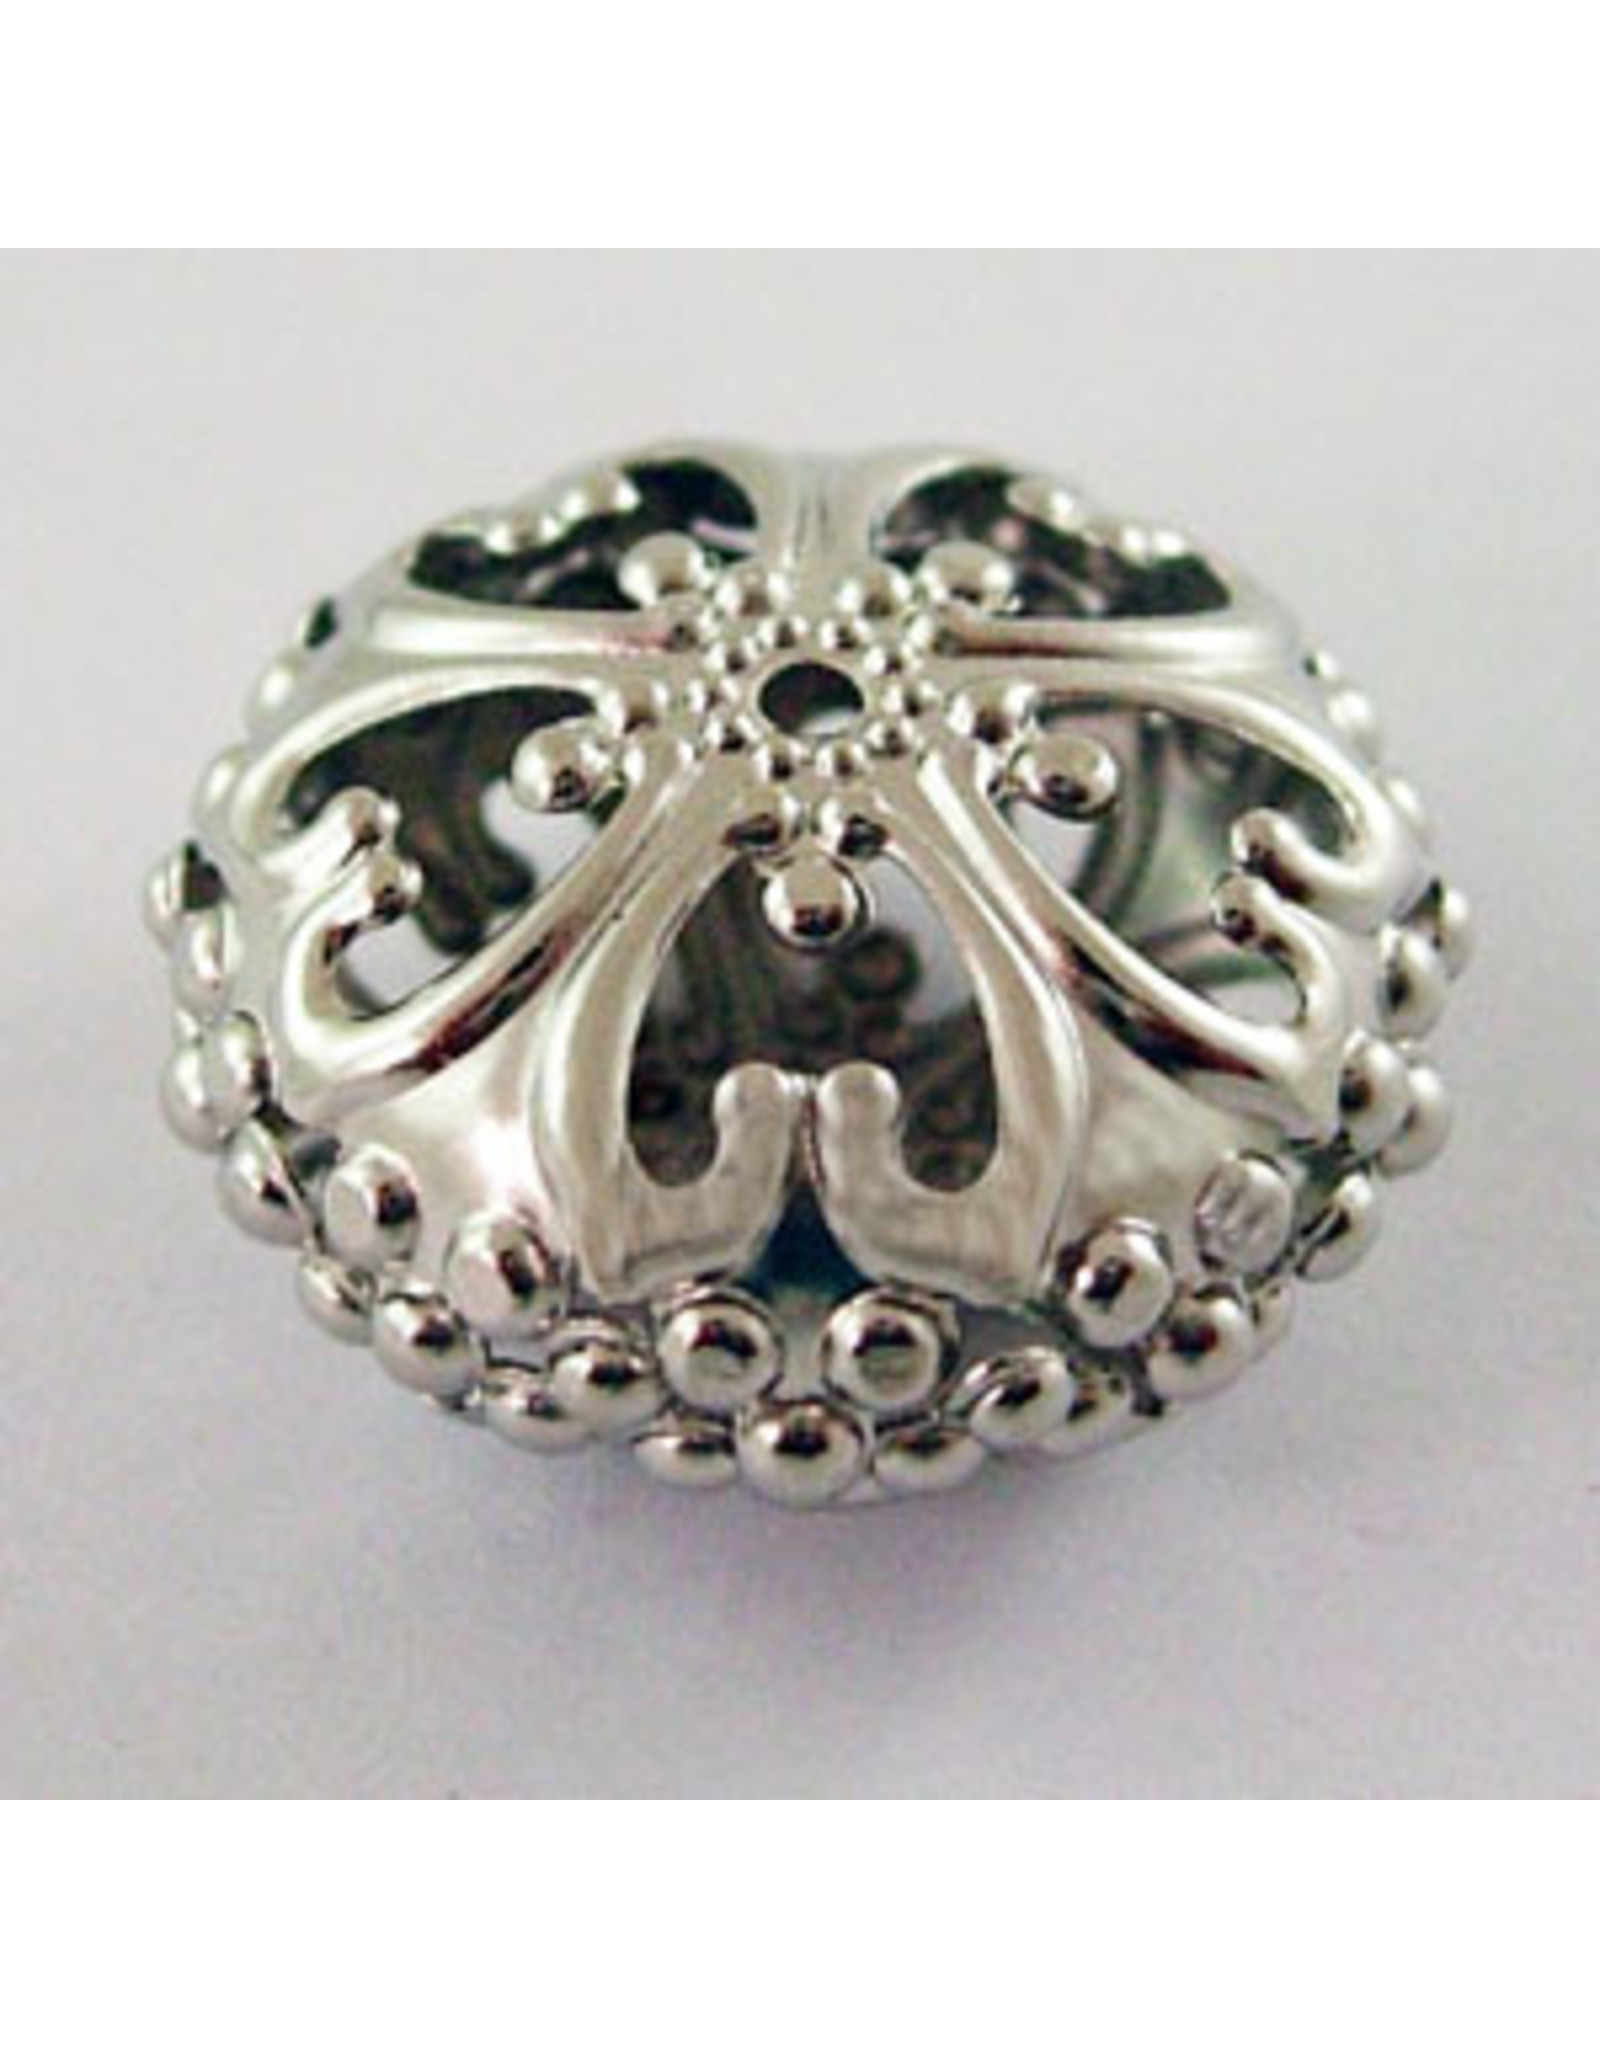 Rondelle Spacer Filigree Platinum 23mm x12.5mm  x5